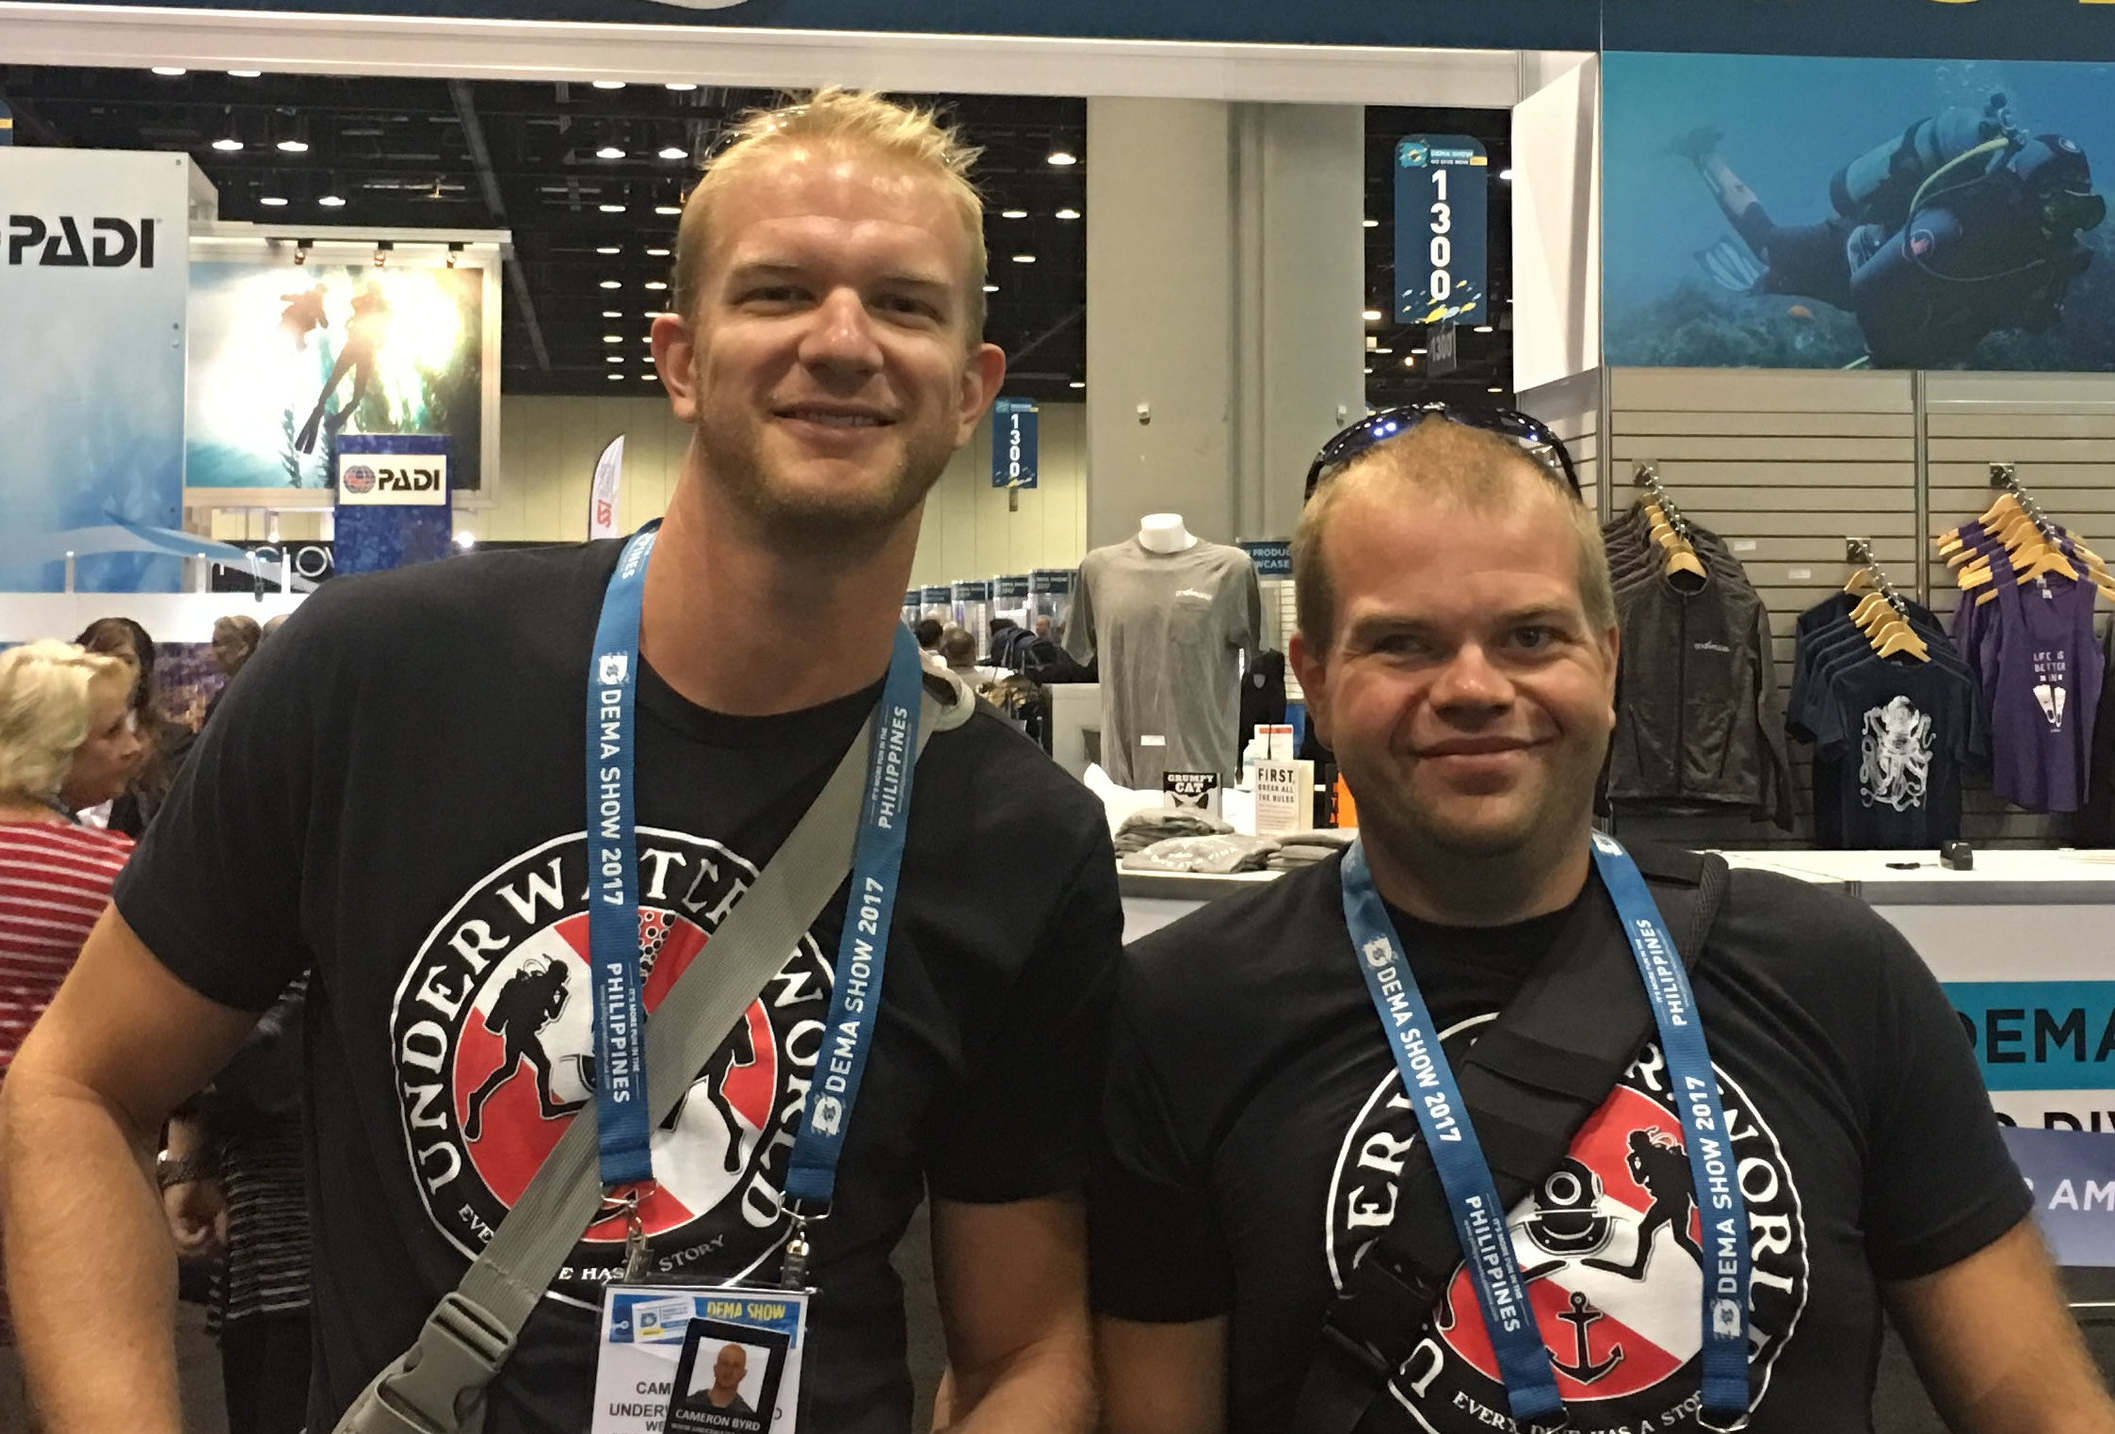 Cam and Ben at DEMA 2017